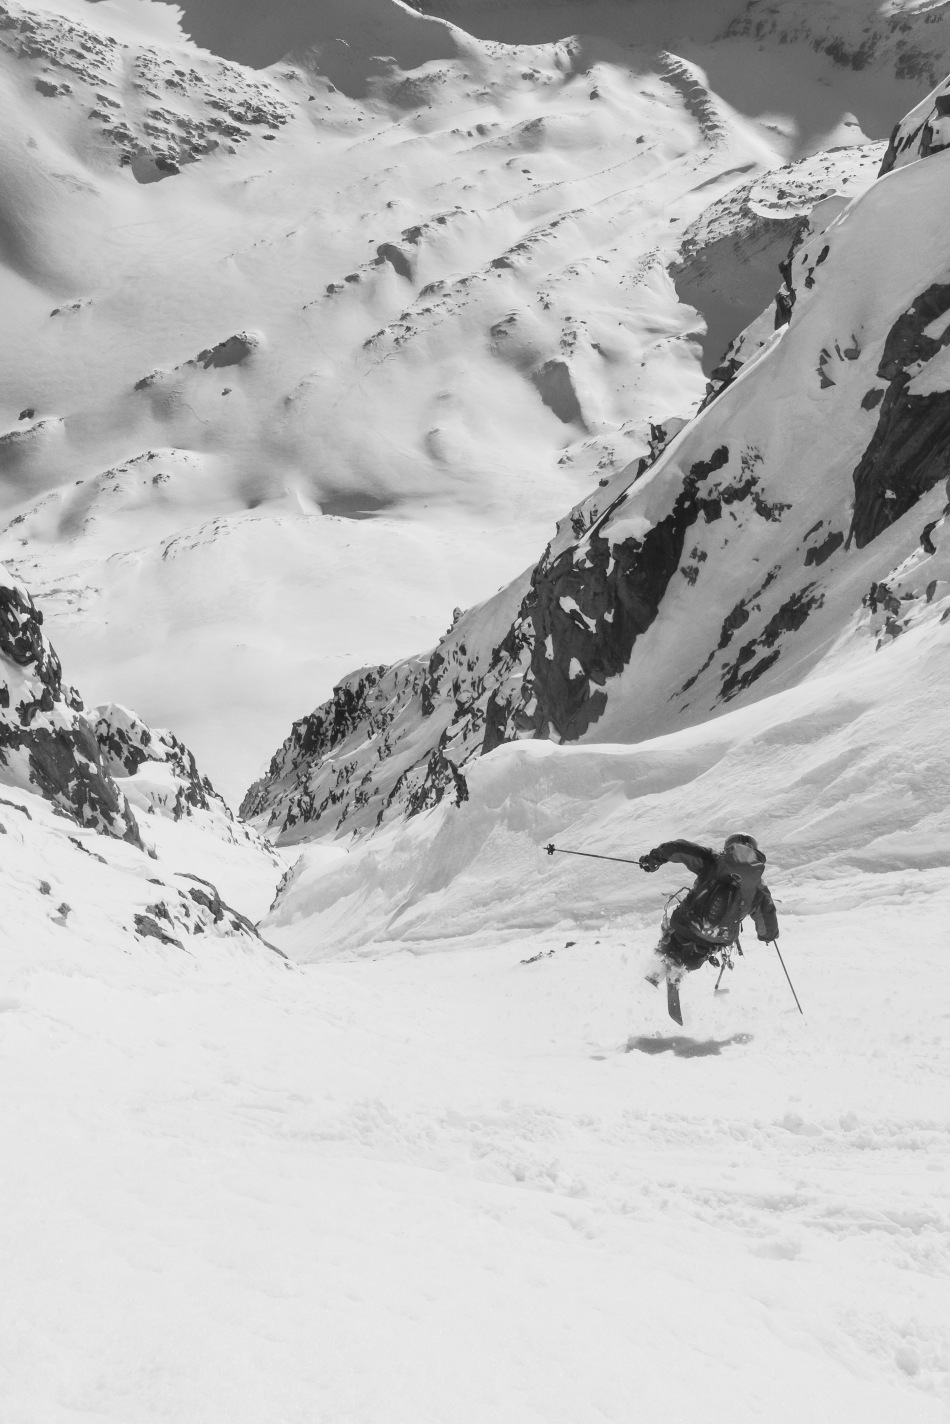 aiguille du midi, ryan boyer, steep skiing, chamonix